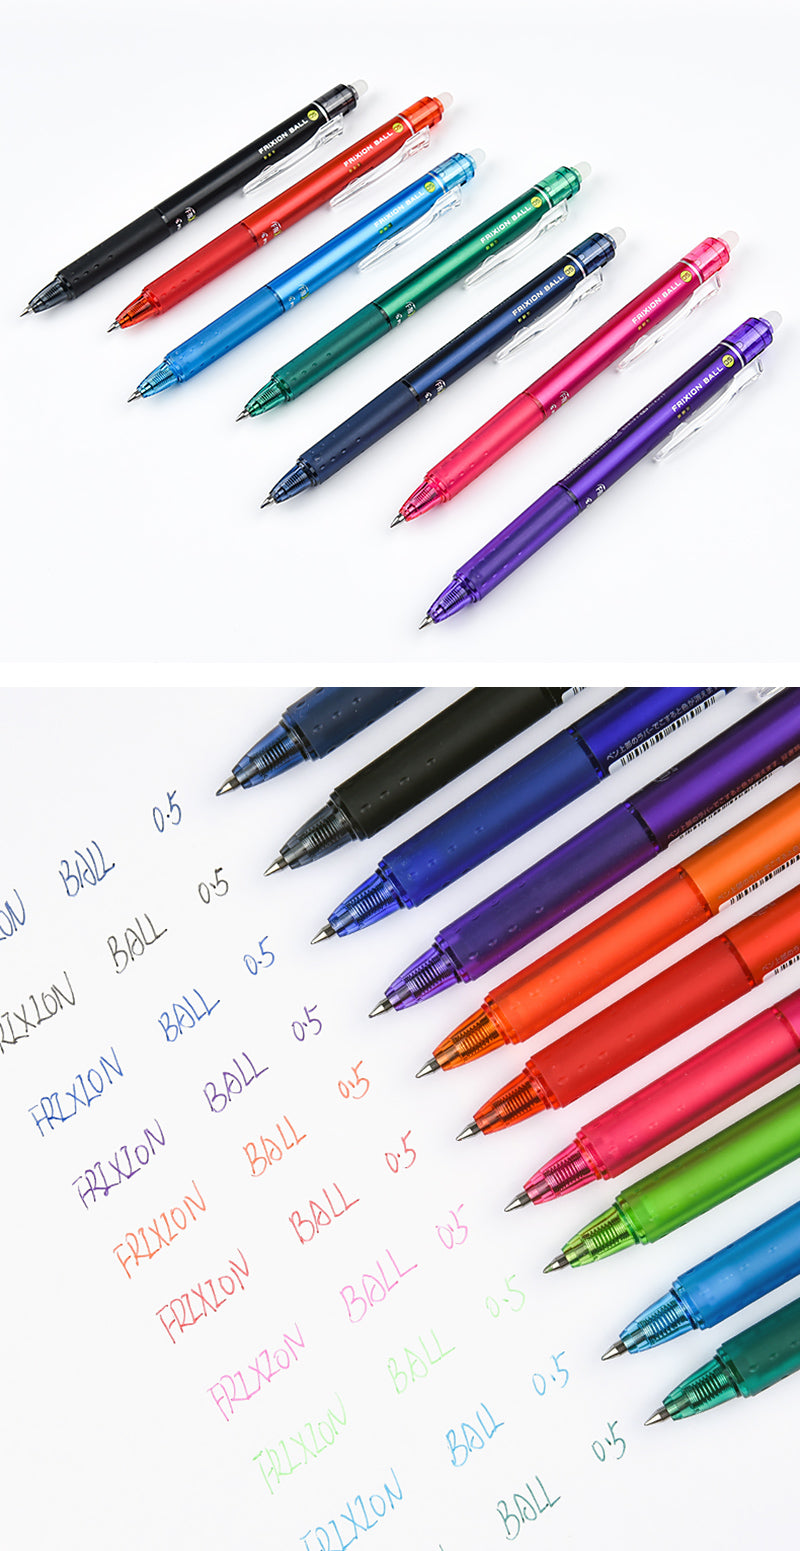 Pilot FriXion Ball Knock Erasable Gel Pen 0.5mm 10 Colors - Detail